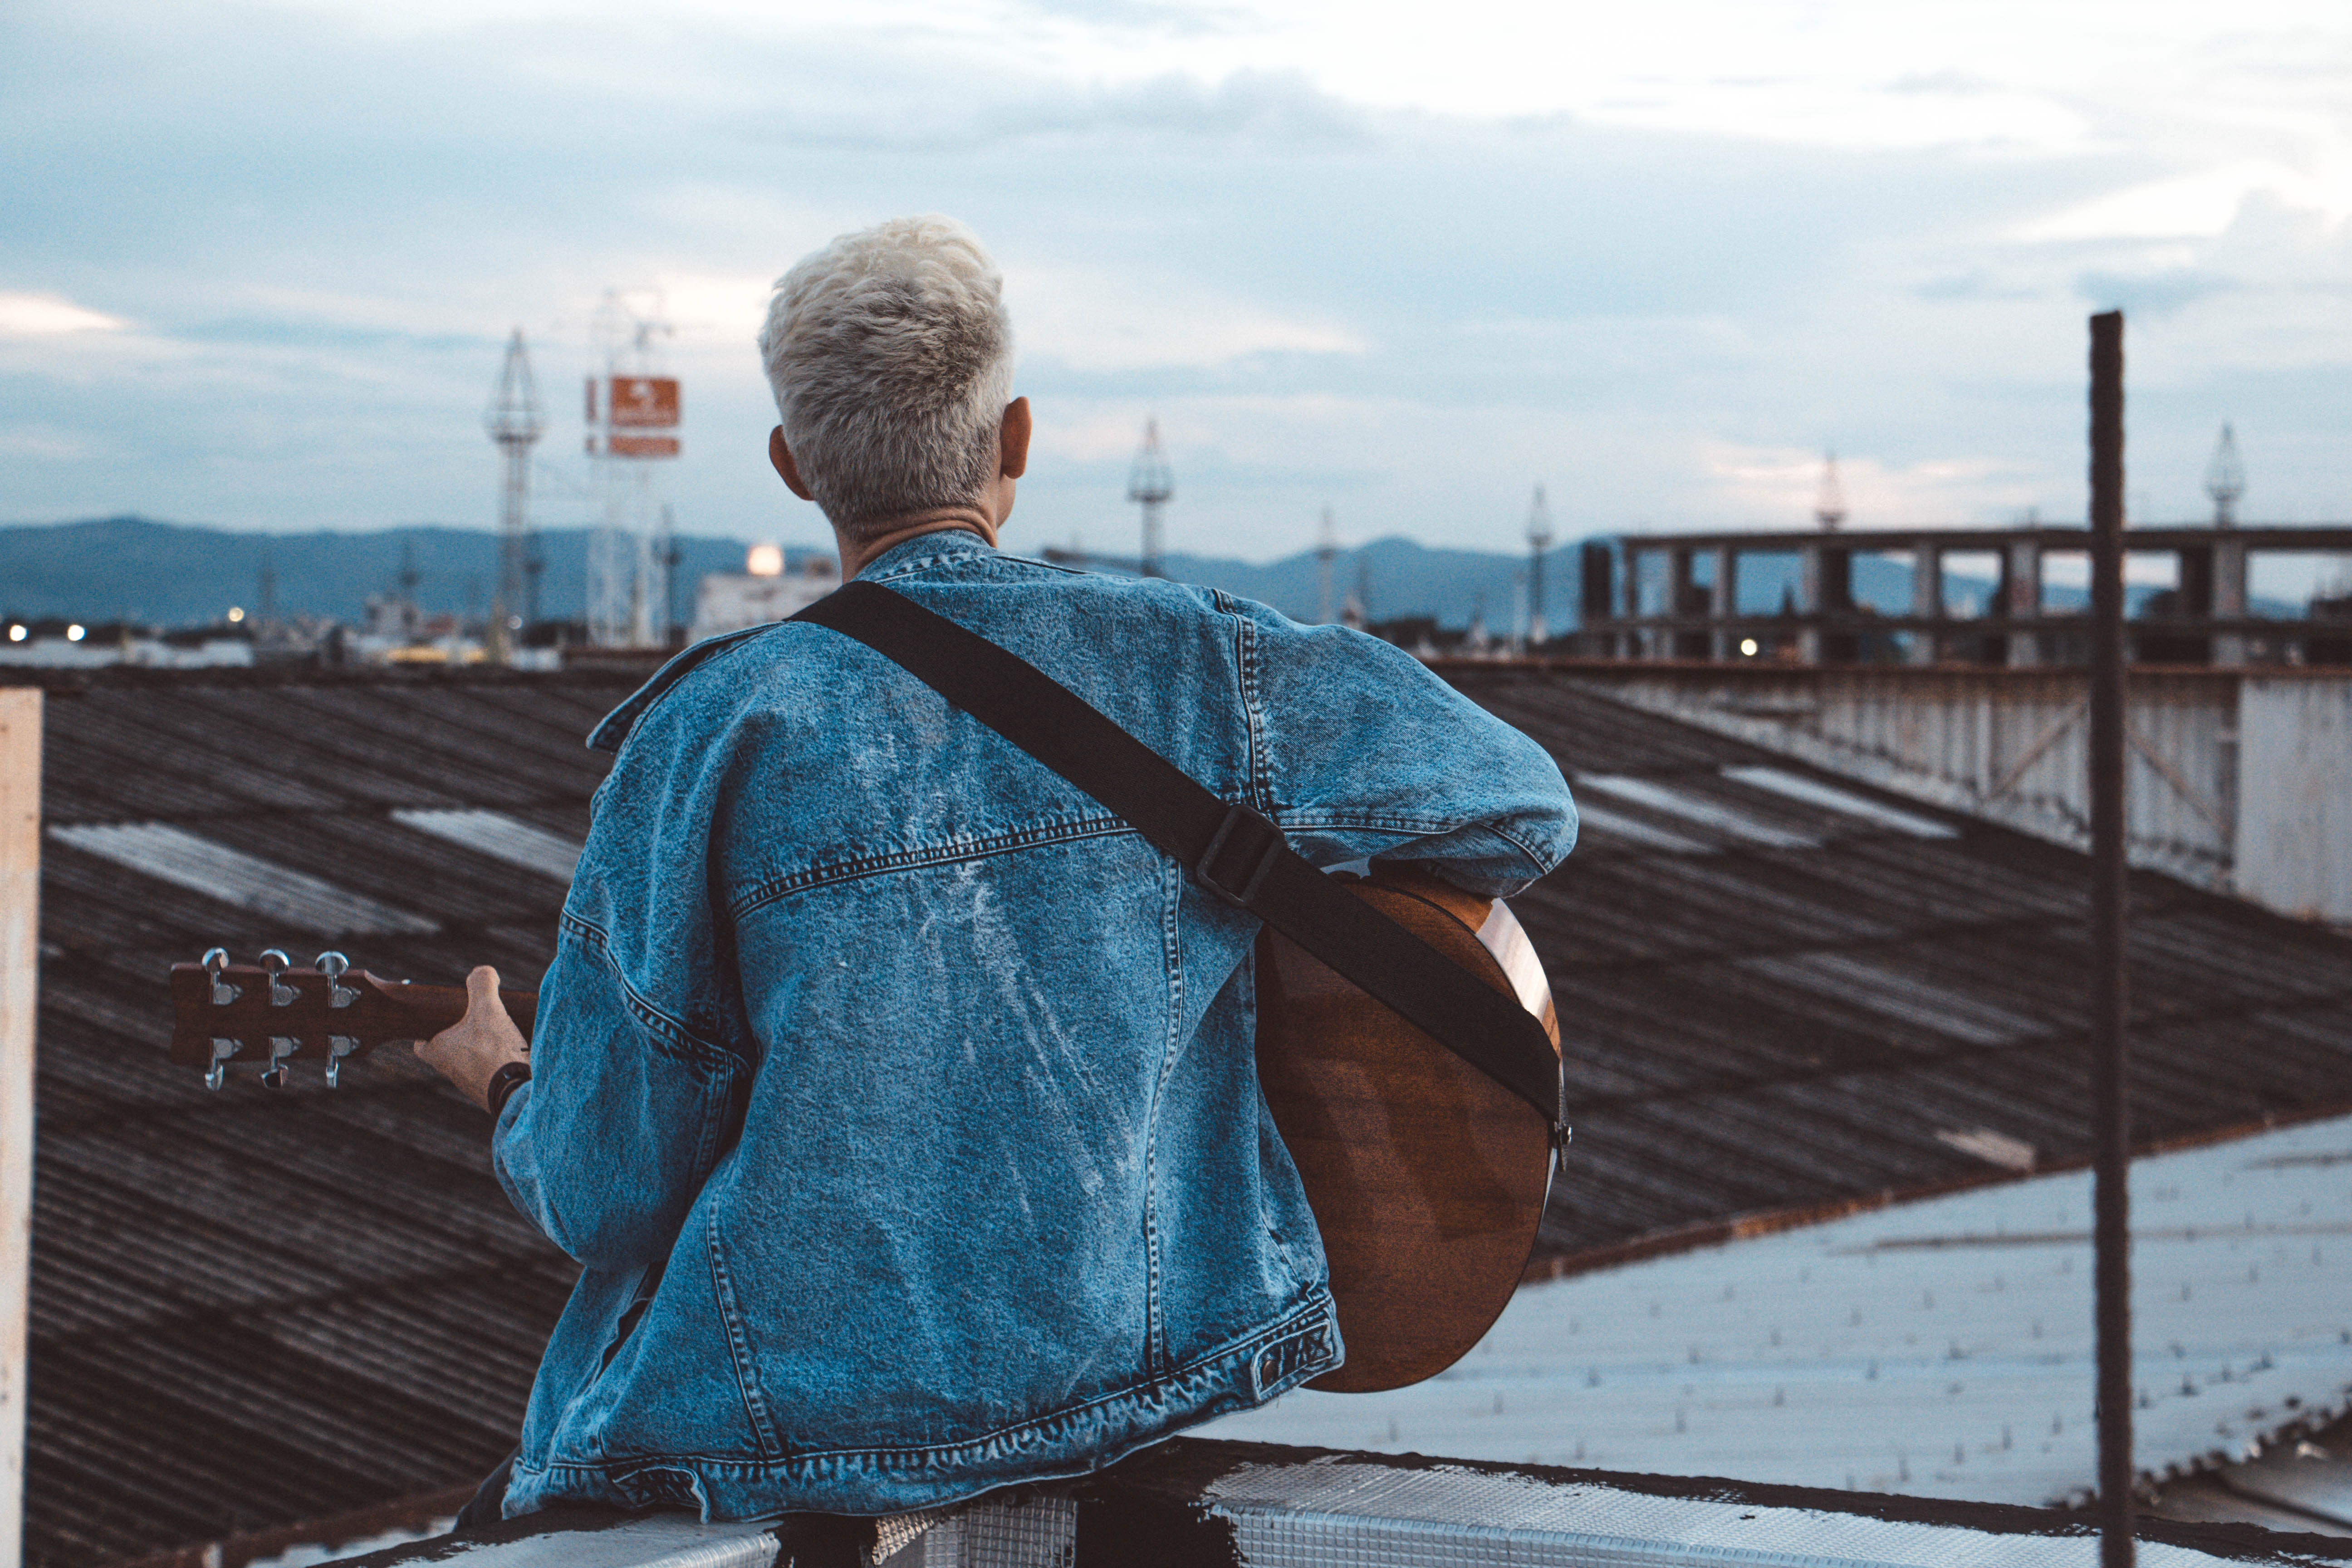 person playing guitar on rooftop